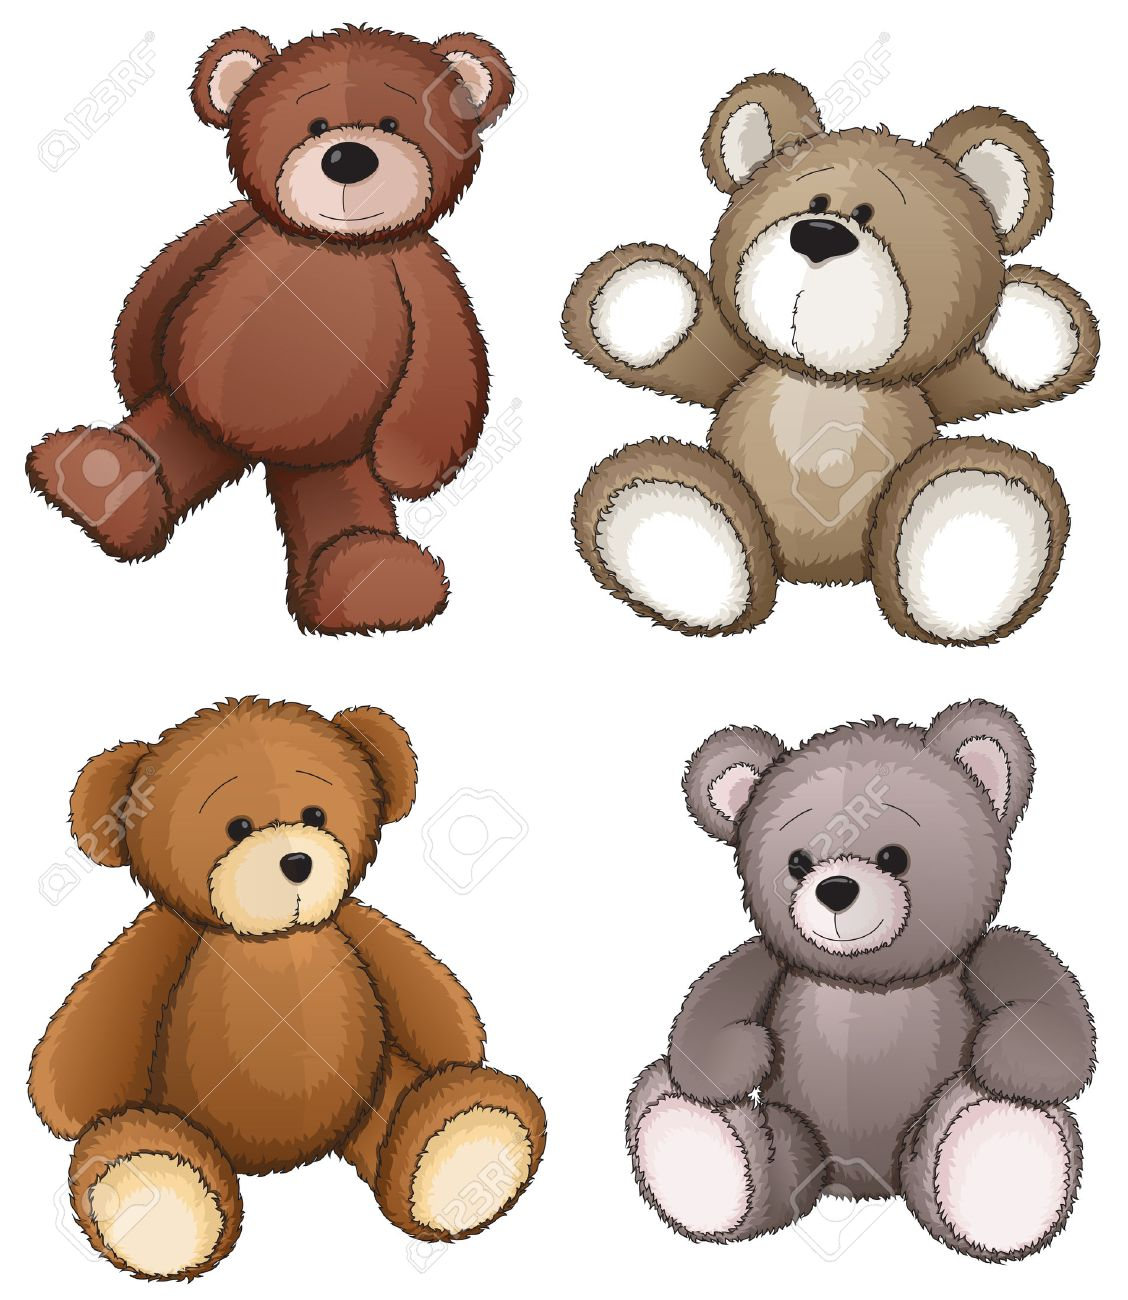 Four teddy bears on a white background - 35905126